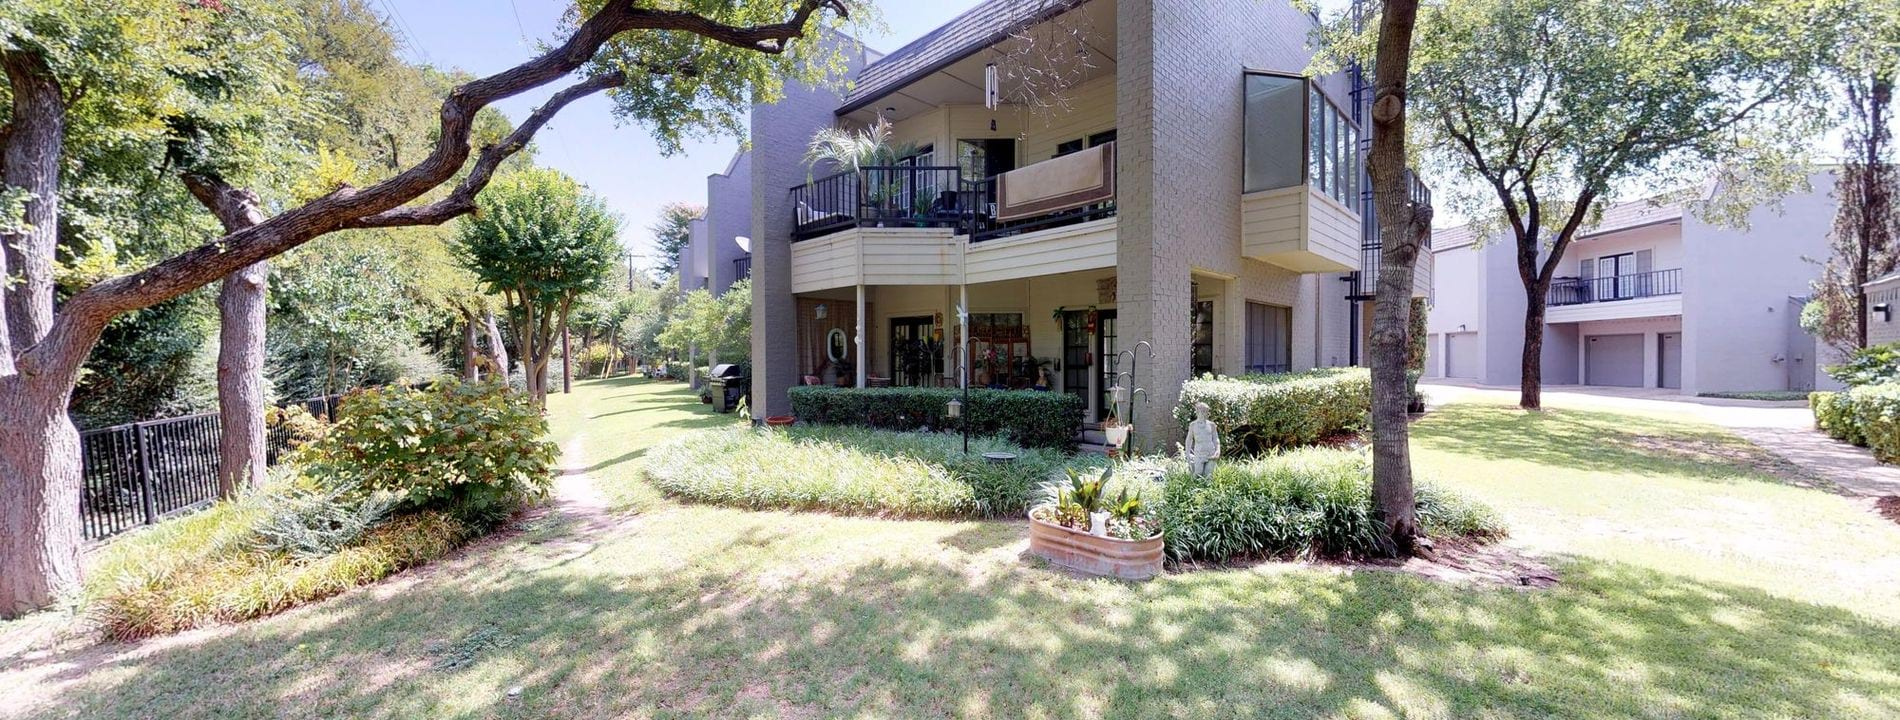 Garage Apartment For Rent In Dallas Apartment Rental Amenities In Dallas Tx Oaks White Rock Amenities